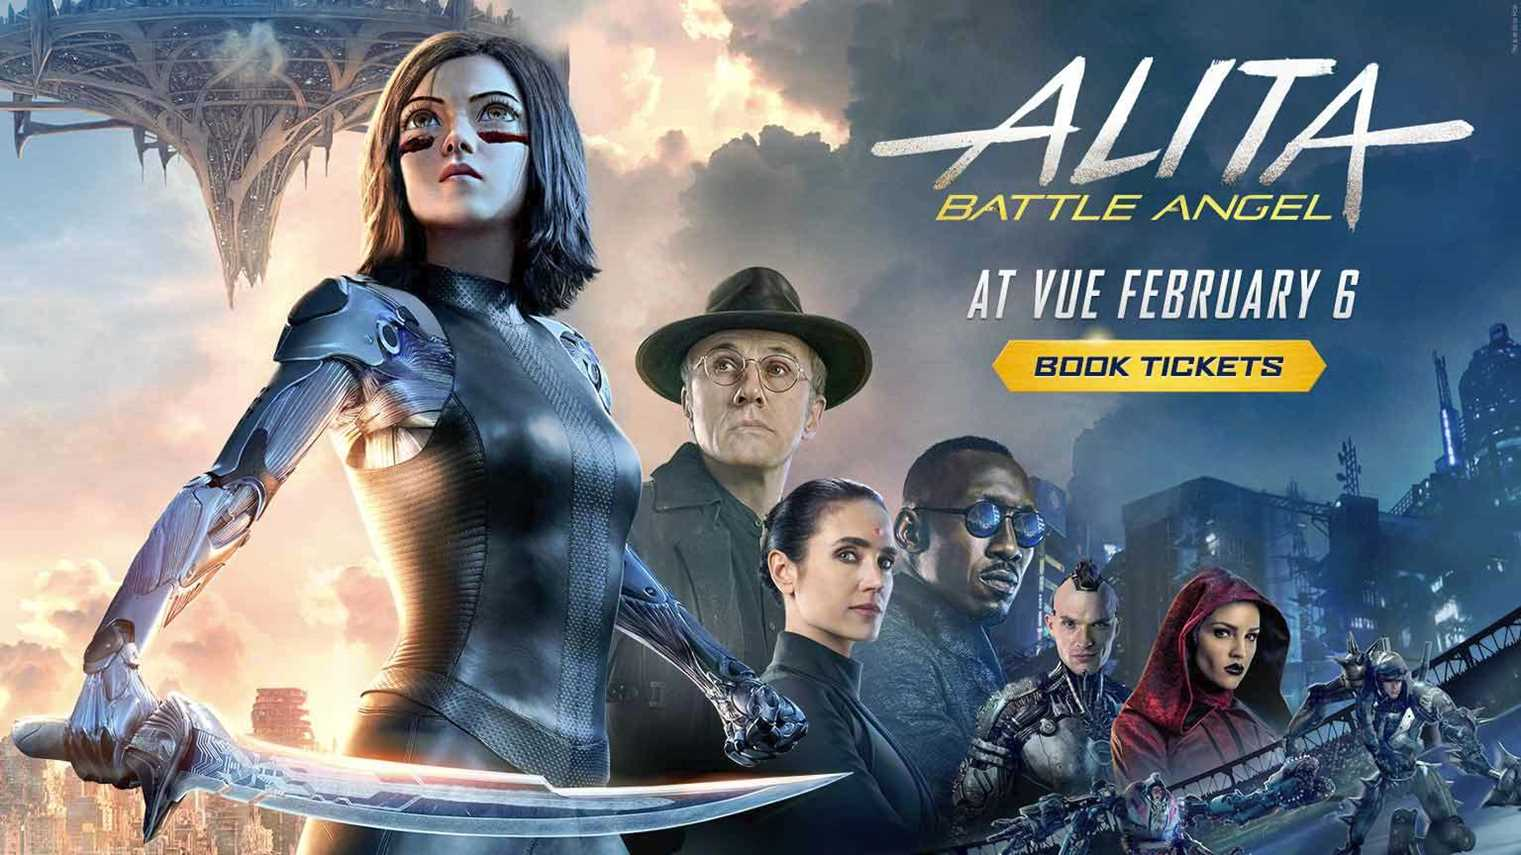 Whats On At Vue Book Film Tickets Online Cinemas What39s Your Favorite Childhood Videogame Games Turtle Rock Alita Battle Angel